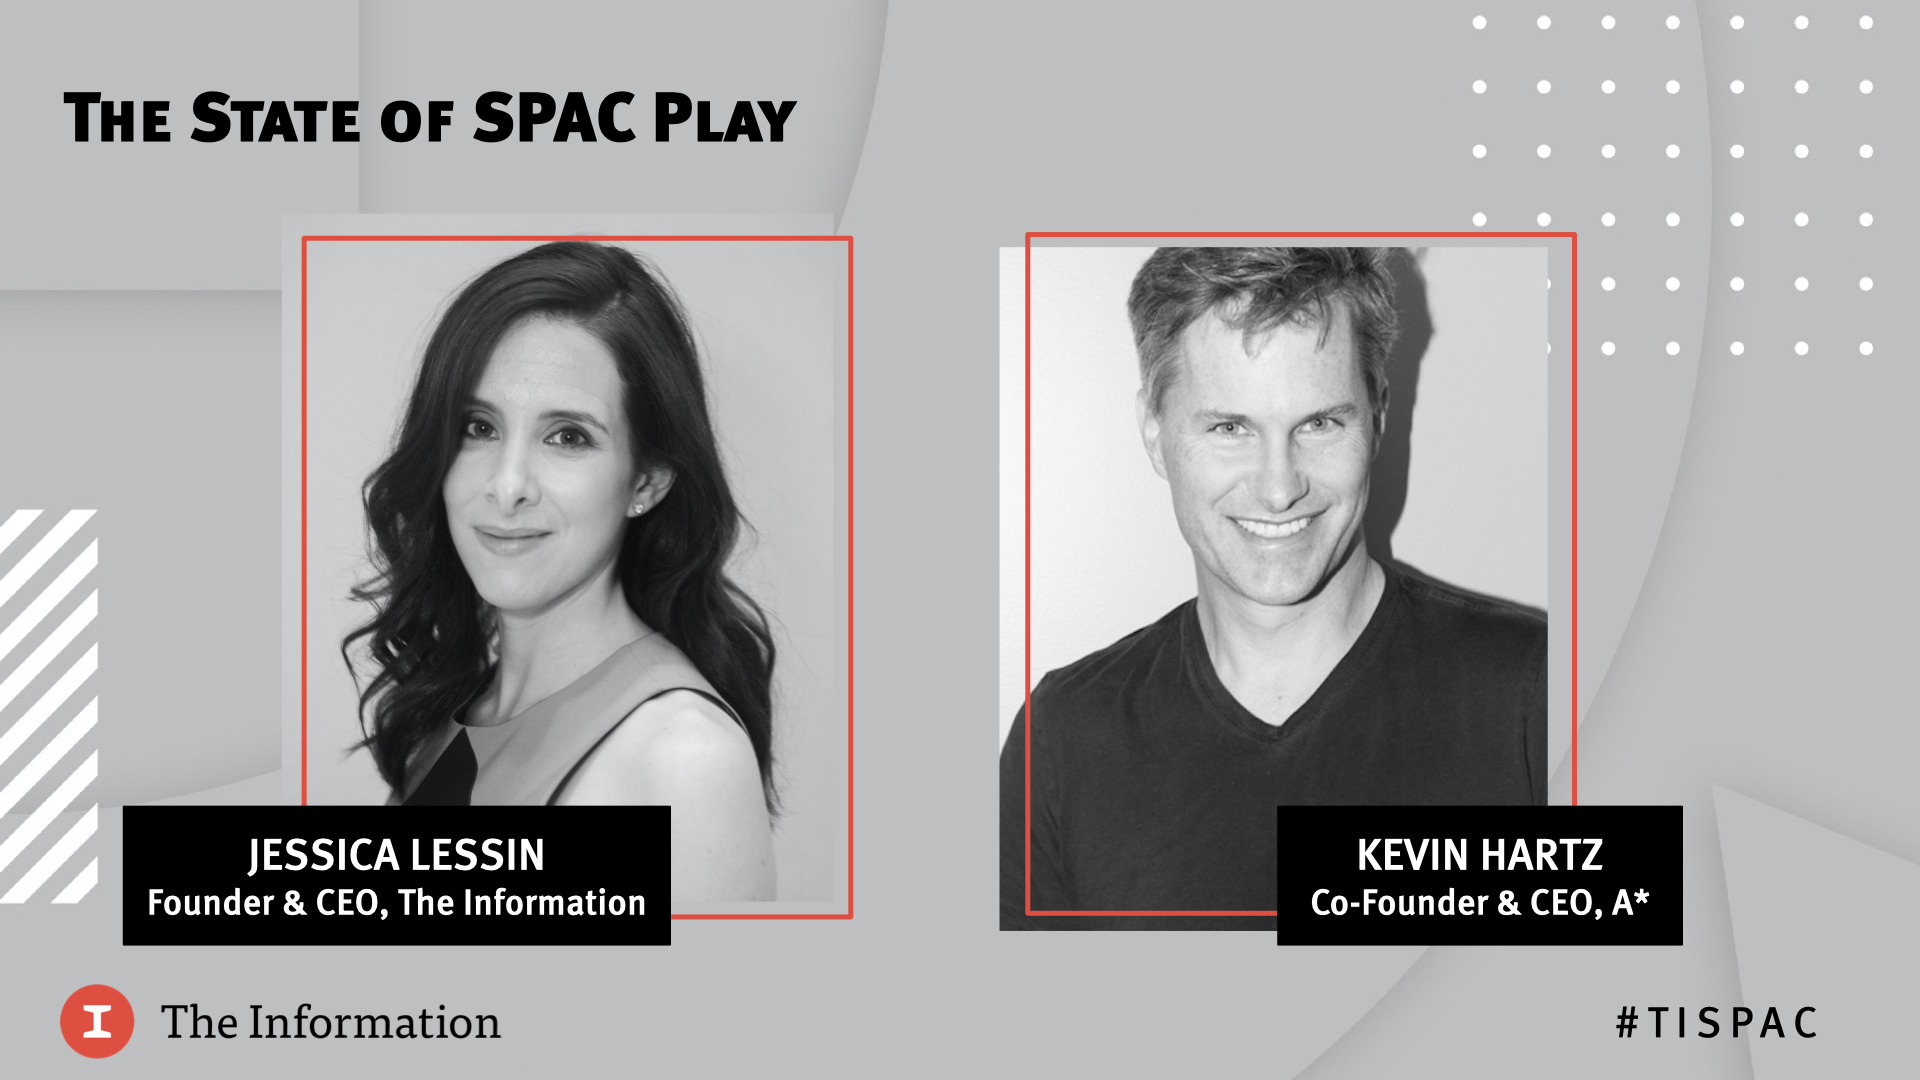 SPAC 2020 - The State of SPAC Play